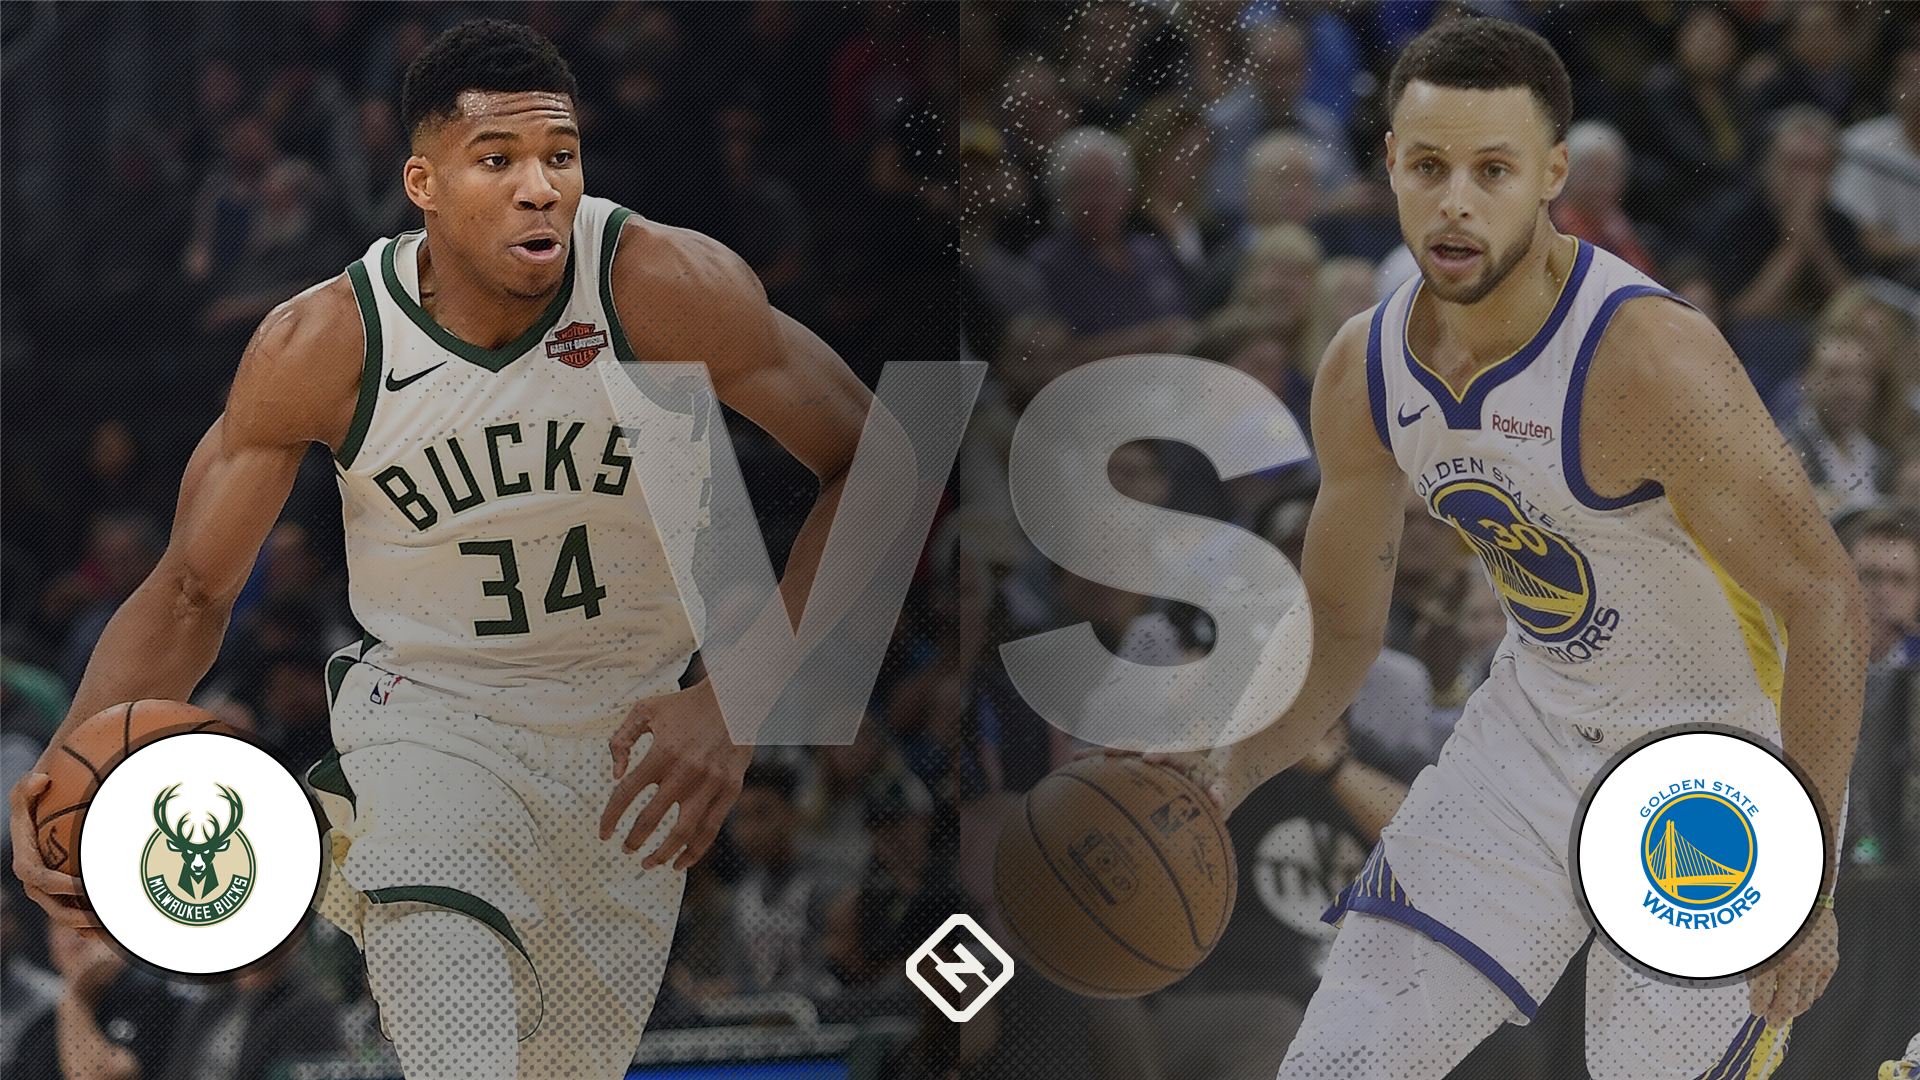 Bucks vs. Warriors: Time, TV channel, how to watch online